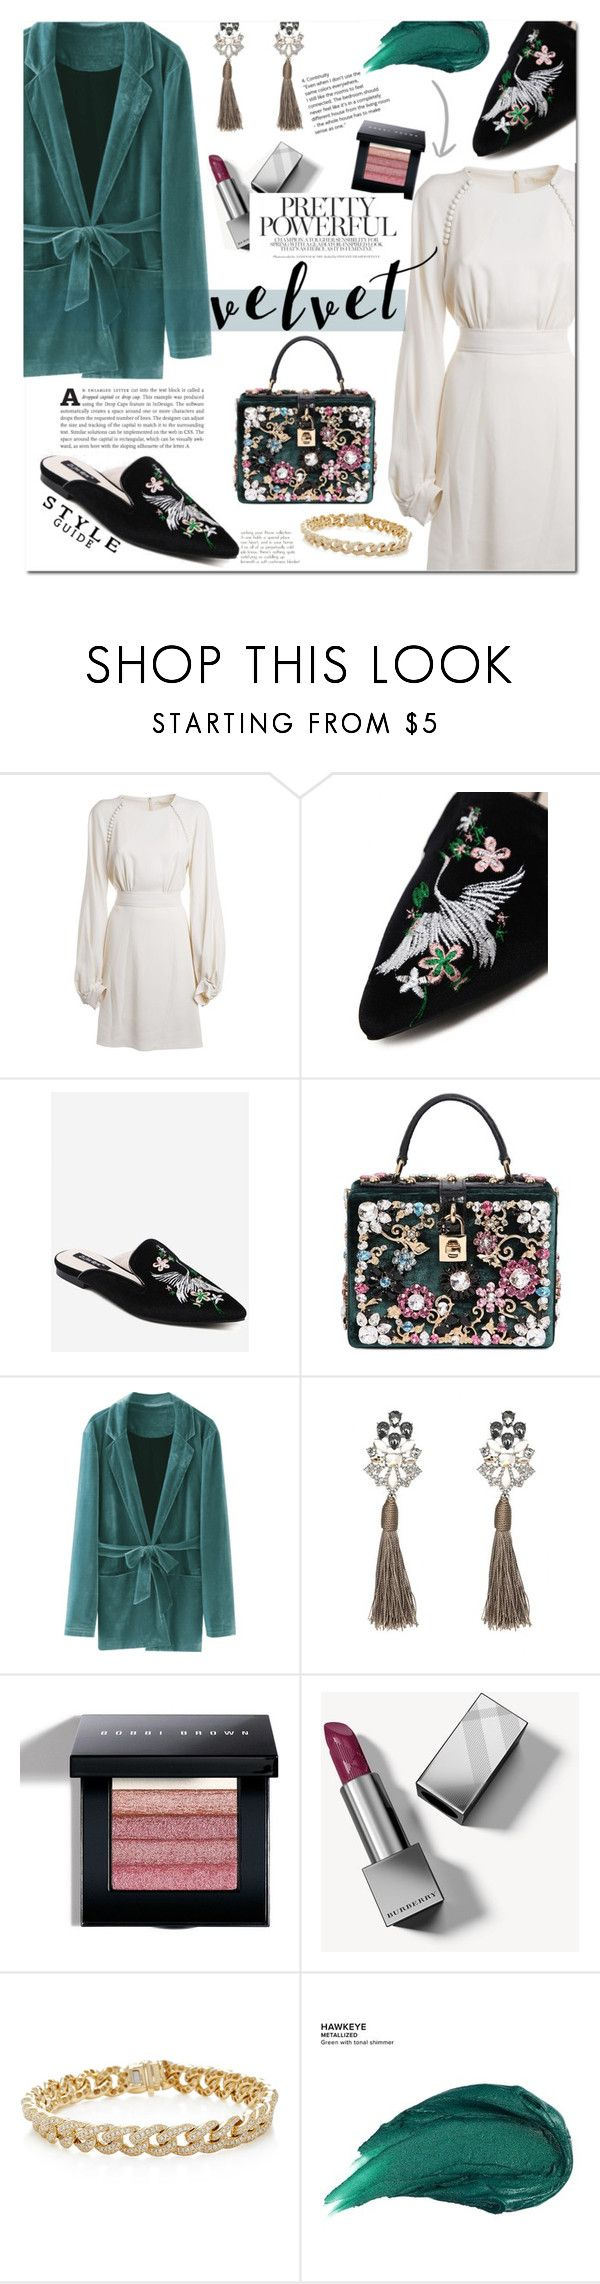 """""""Velvet"""" by mery90 ❤ liked on Polyvore featuring Chloé, Dolce&Gabbana, Bobbi Brown Cosmetics, Burberry, Sydney Evan, Urban Decay, vintage, velvet, fallstyle and zaful"""